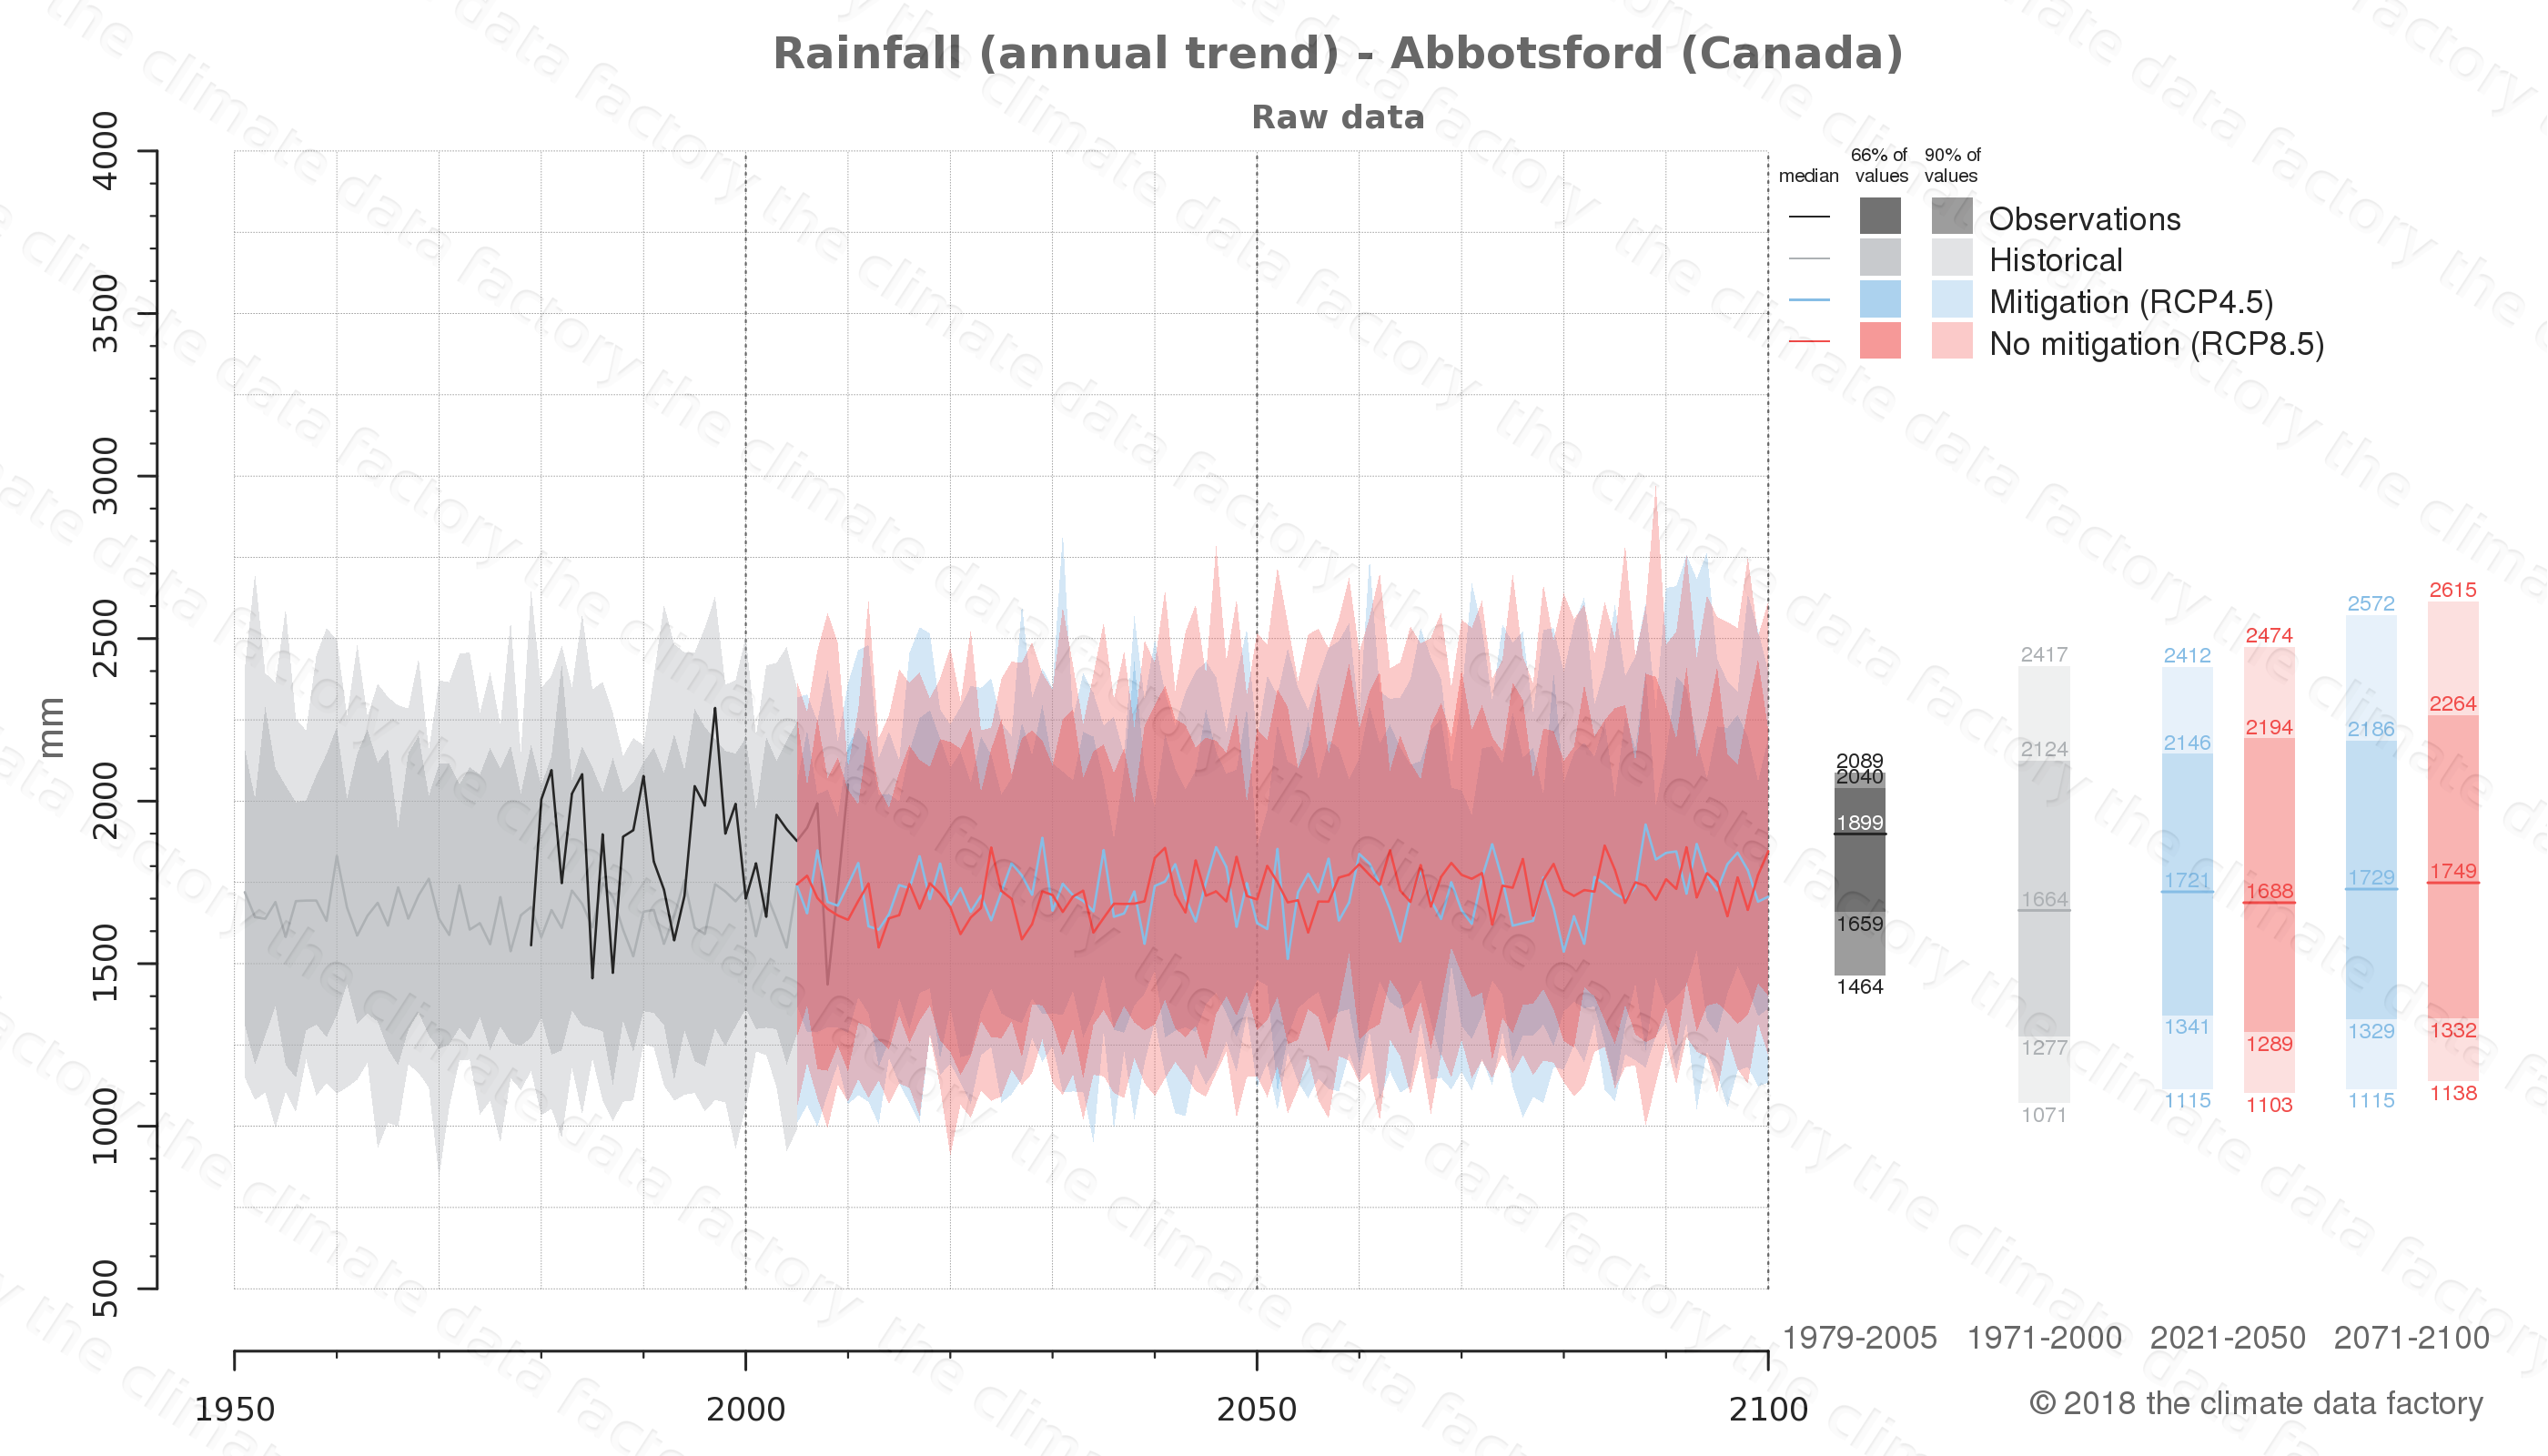 climate change data policy adaptation climate graph city data rainfall abbotsford canada